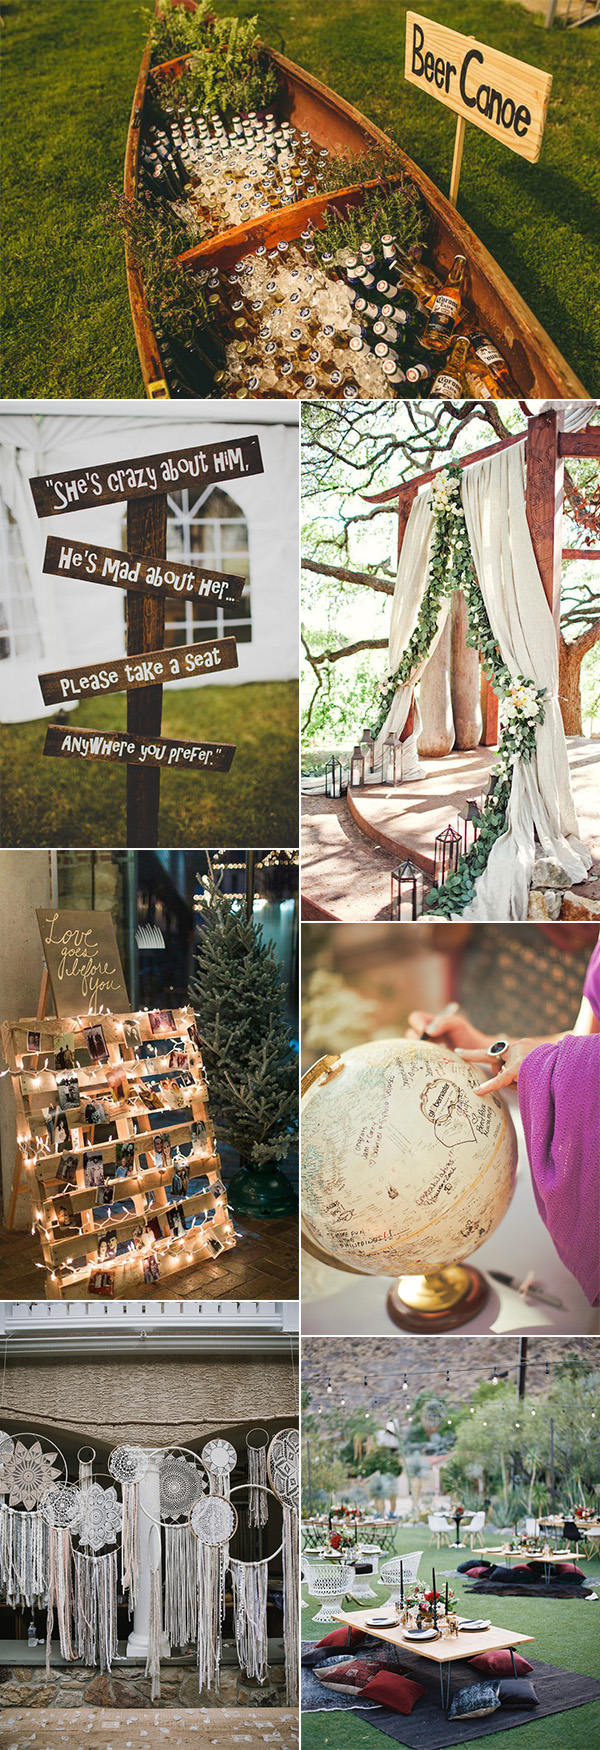 2018 trending boho wedding ideas